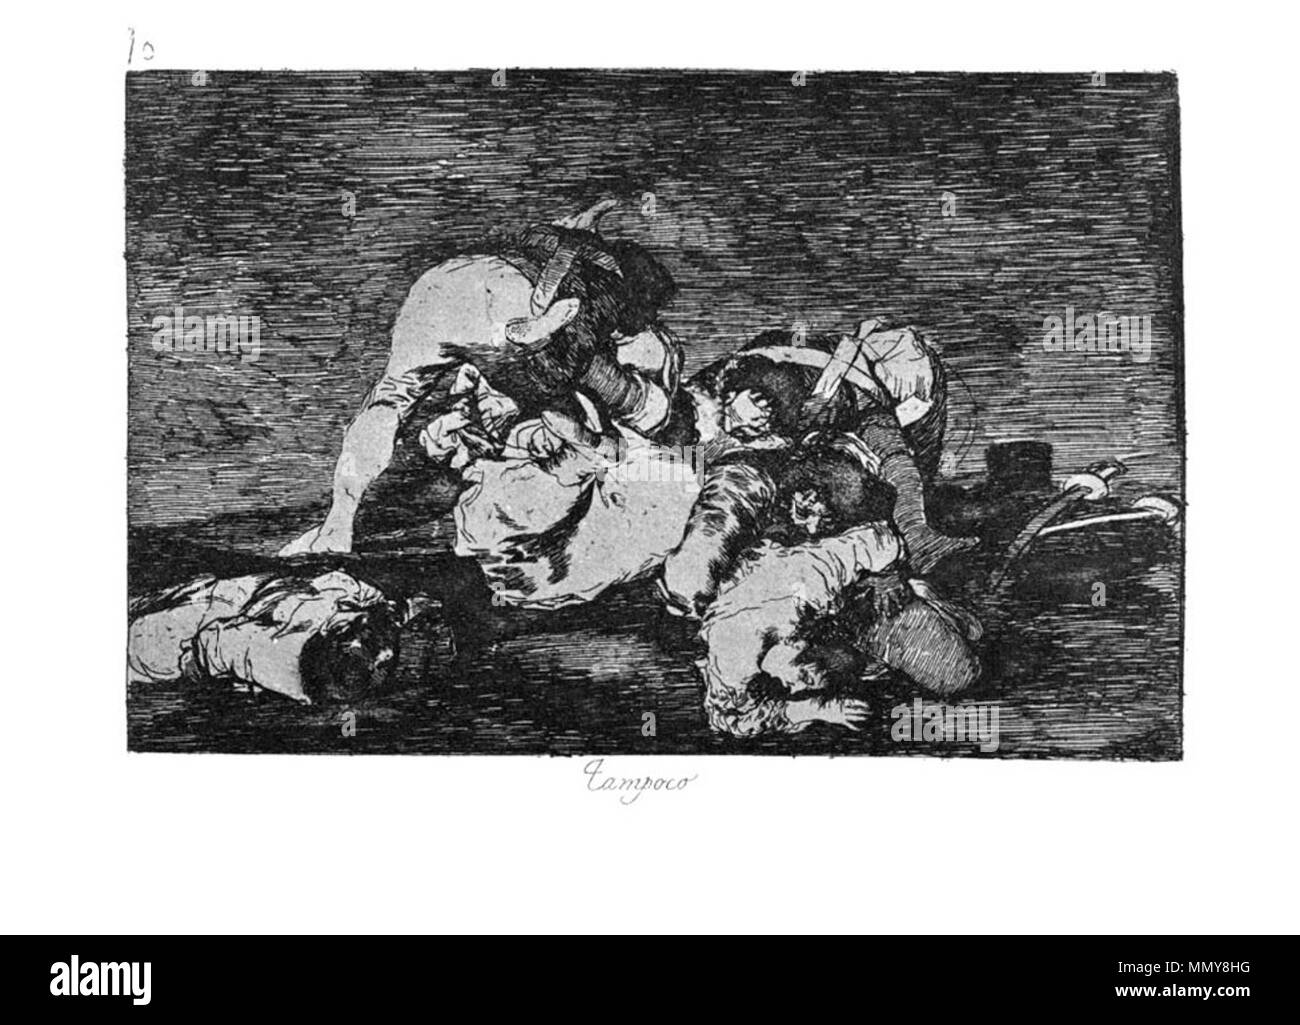 . Los Desatres de la Guerra is a set of 80 aquatint prints created by Francisco Goya in the 1810s. Plate 10: Tampoco (Nor do these )  . 1810s.   Francisco Goya (1746–1828)   Alternative names Francisco Goya Lucientes, Francisco de Goya y Lucientes, Francisco José Goya Lucientes  Description Spanish painter, printmaker, lithographer, engraver and etcher  Date of birth/death 30 March 1746 16 April 1828  Location of birth/death Fuendetodos Bordeaux  Work location Madrid, Zaragoza, Bordeaux  Authority control  : Q5432 VIAF:?54343141 ISNI:?0000 0001 2280 1608 ULAN:?500118936 LCCN:?n79003363 NLA - Stock Image